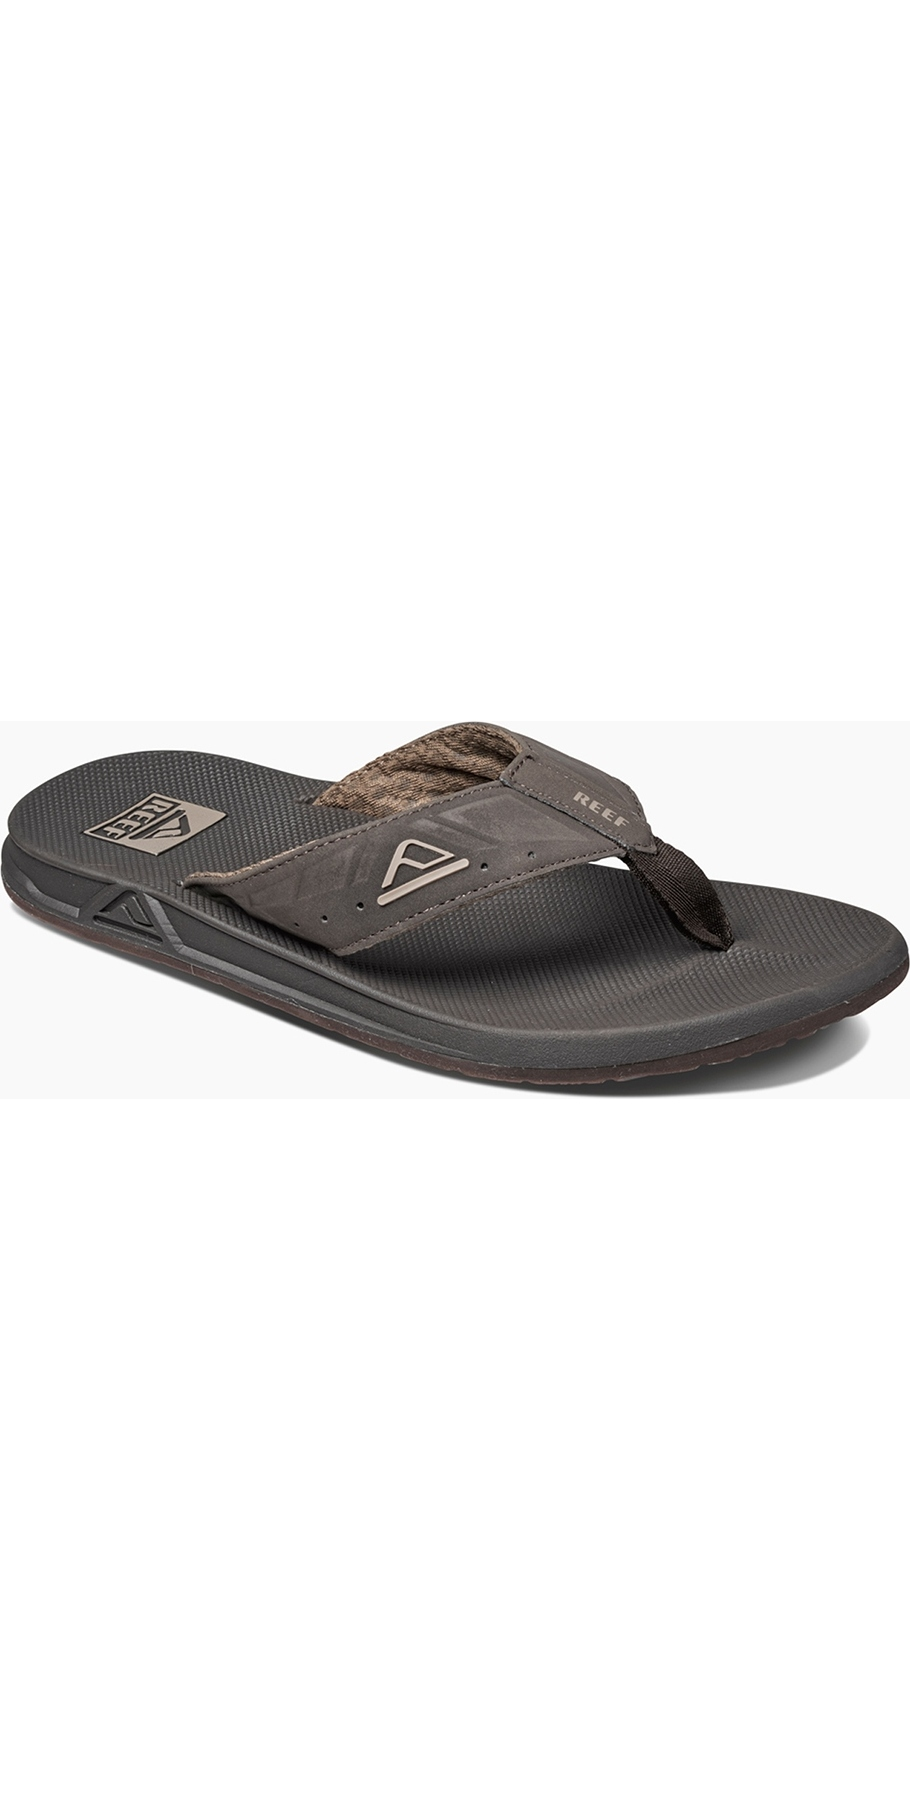 watch c6ca3 c24c2 2019 Reef Mens Phantoms Flip Flops Braun RF002046